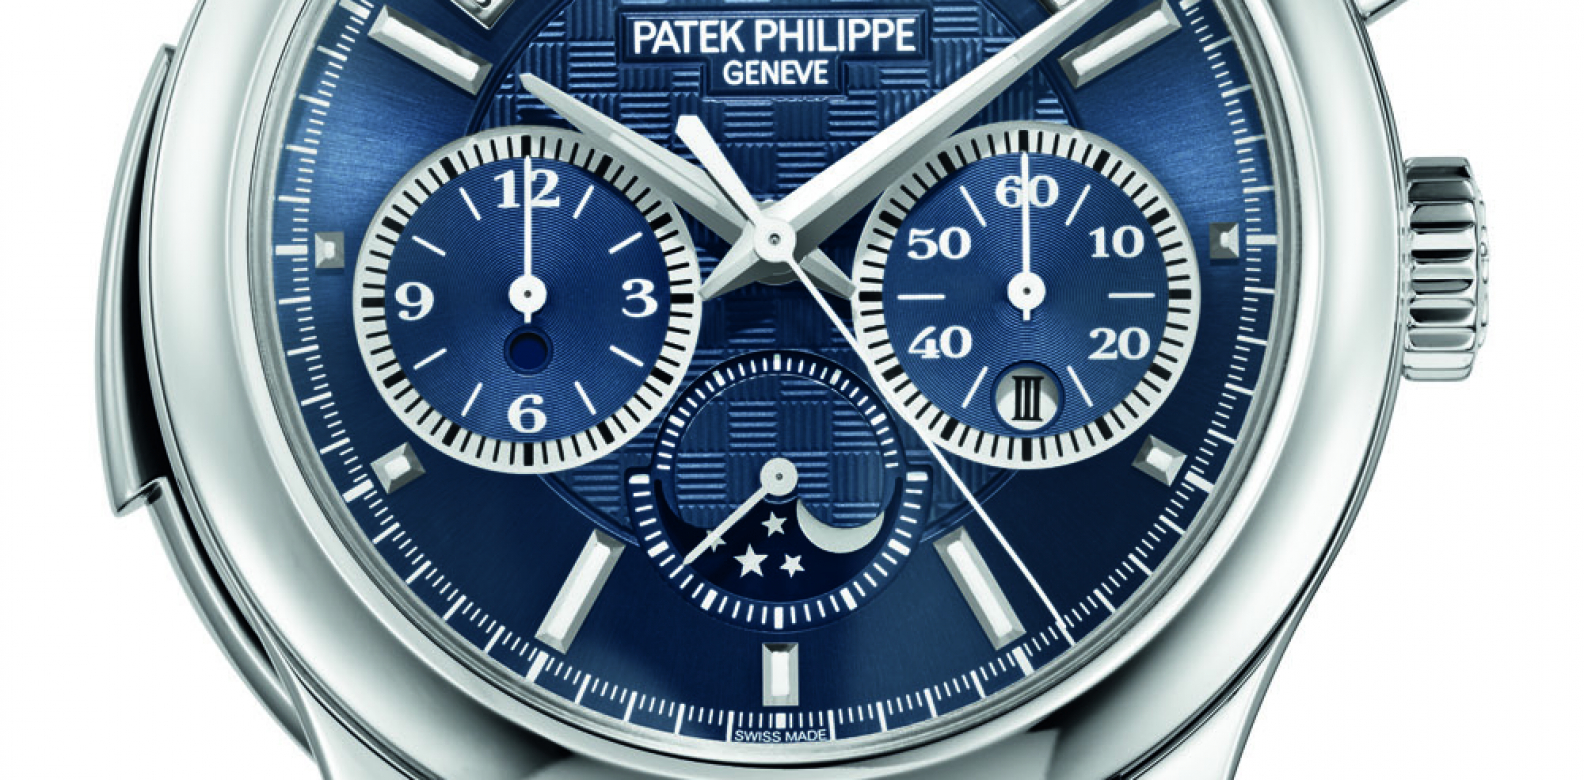 Anything from Patek Philippe generates interest and buzz among collectors and industry experts. Combining a material the storied brand rarely uses, titanium, with a beautifully executed hand-guilloched carbon-fibre dial, this piece is set to break auction records. (Photo: Courtesy of Patek Philippe)